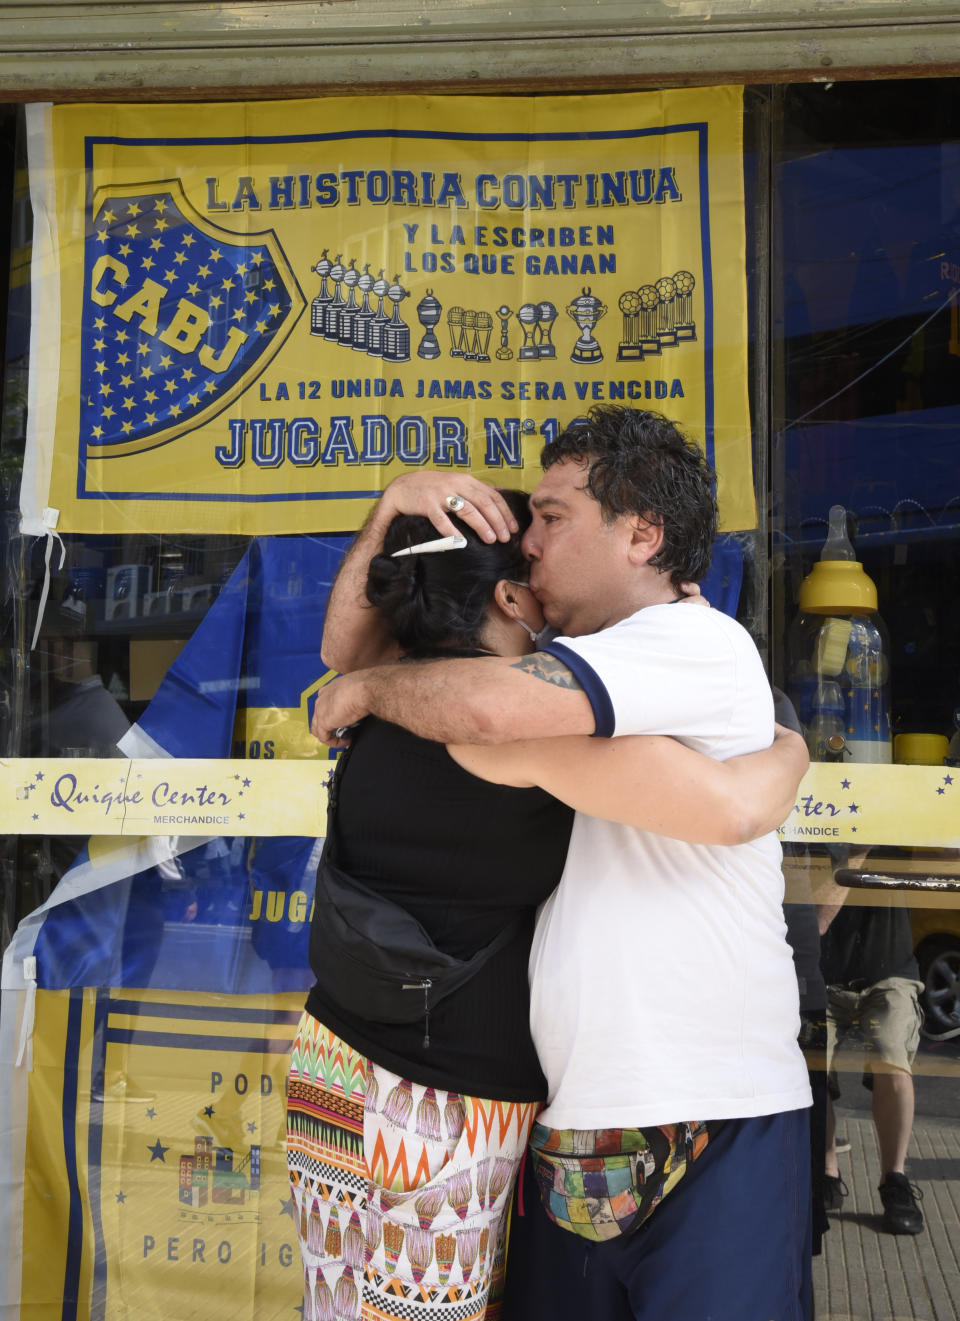 BUENOS AIRES, ARGENTINA - NOVEMBER 25: Fans of Boca Juniors cry and hug eachother near La Bombonera stadium after the news of the death of Diego Maradona was known on November 25, 2020 in Buenos Aires. Diego Maradona, considered one of the biggest football stars in history, died at 60 from a heart attack on Wednesday in Buenos Aires. (Photo by Fotonoticias/Getty Images)